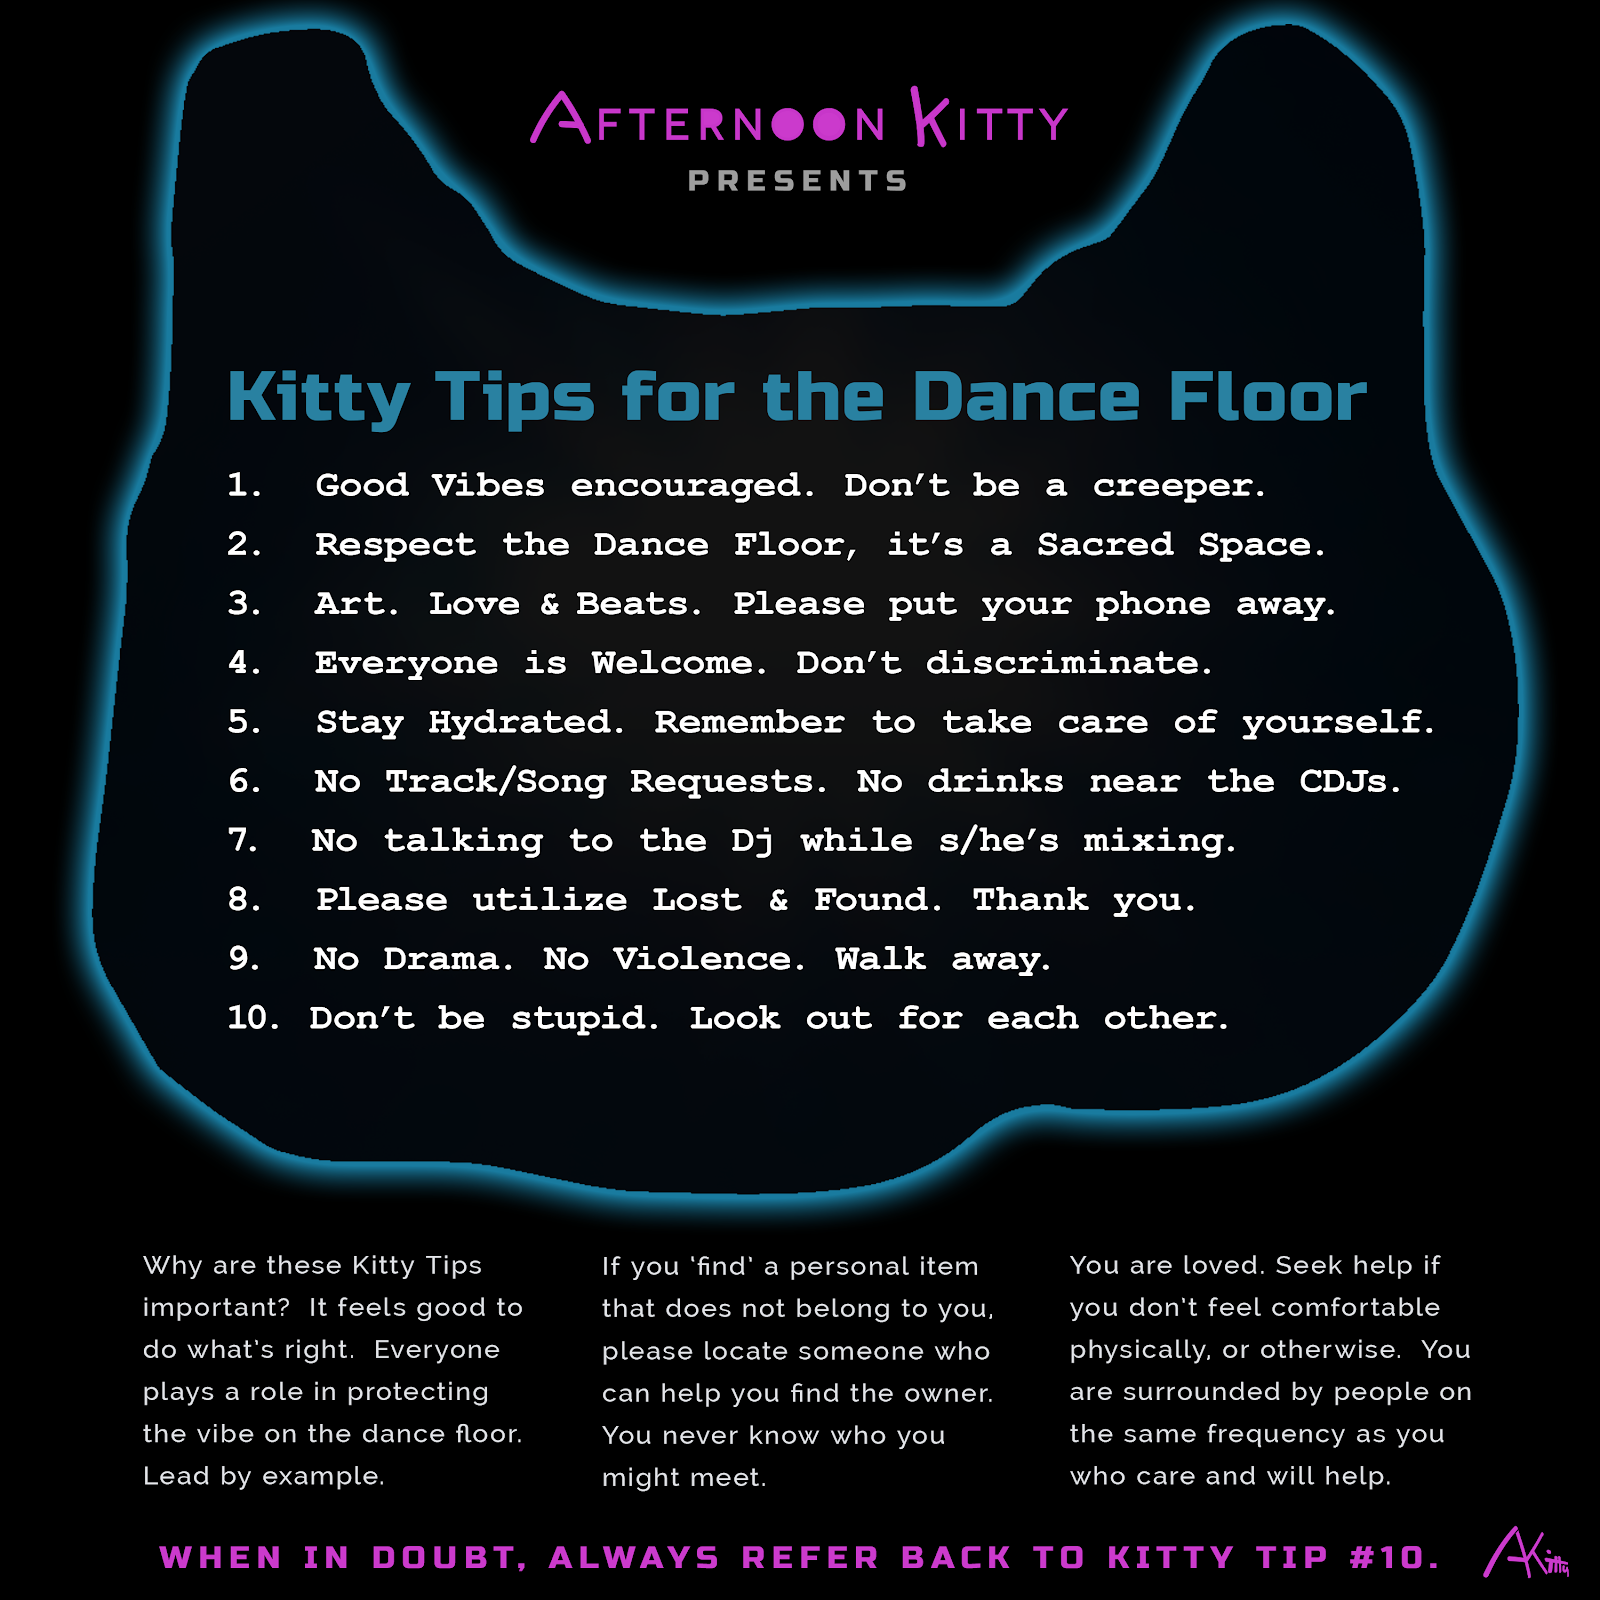 Afternoon Kitty graphic; list of tips for the dance floor